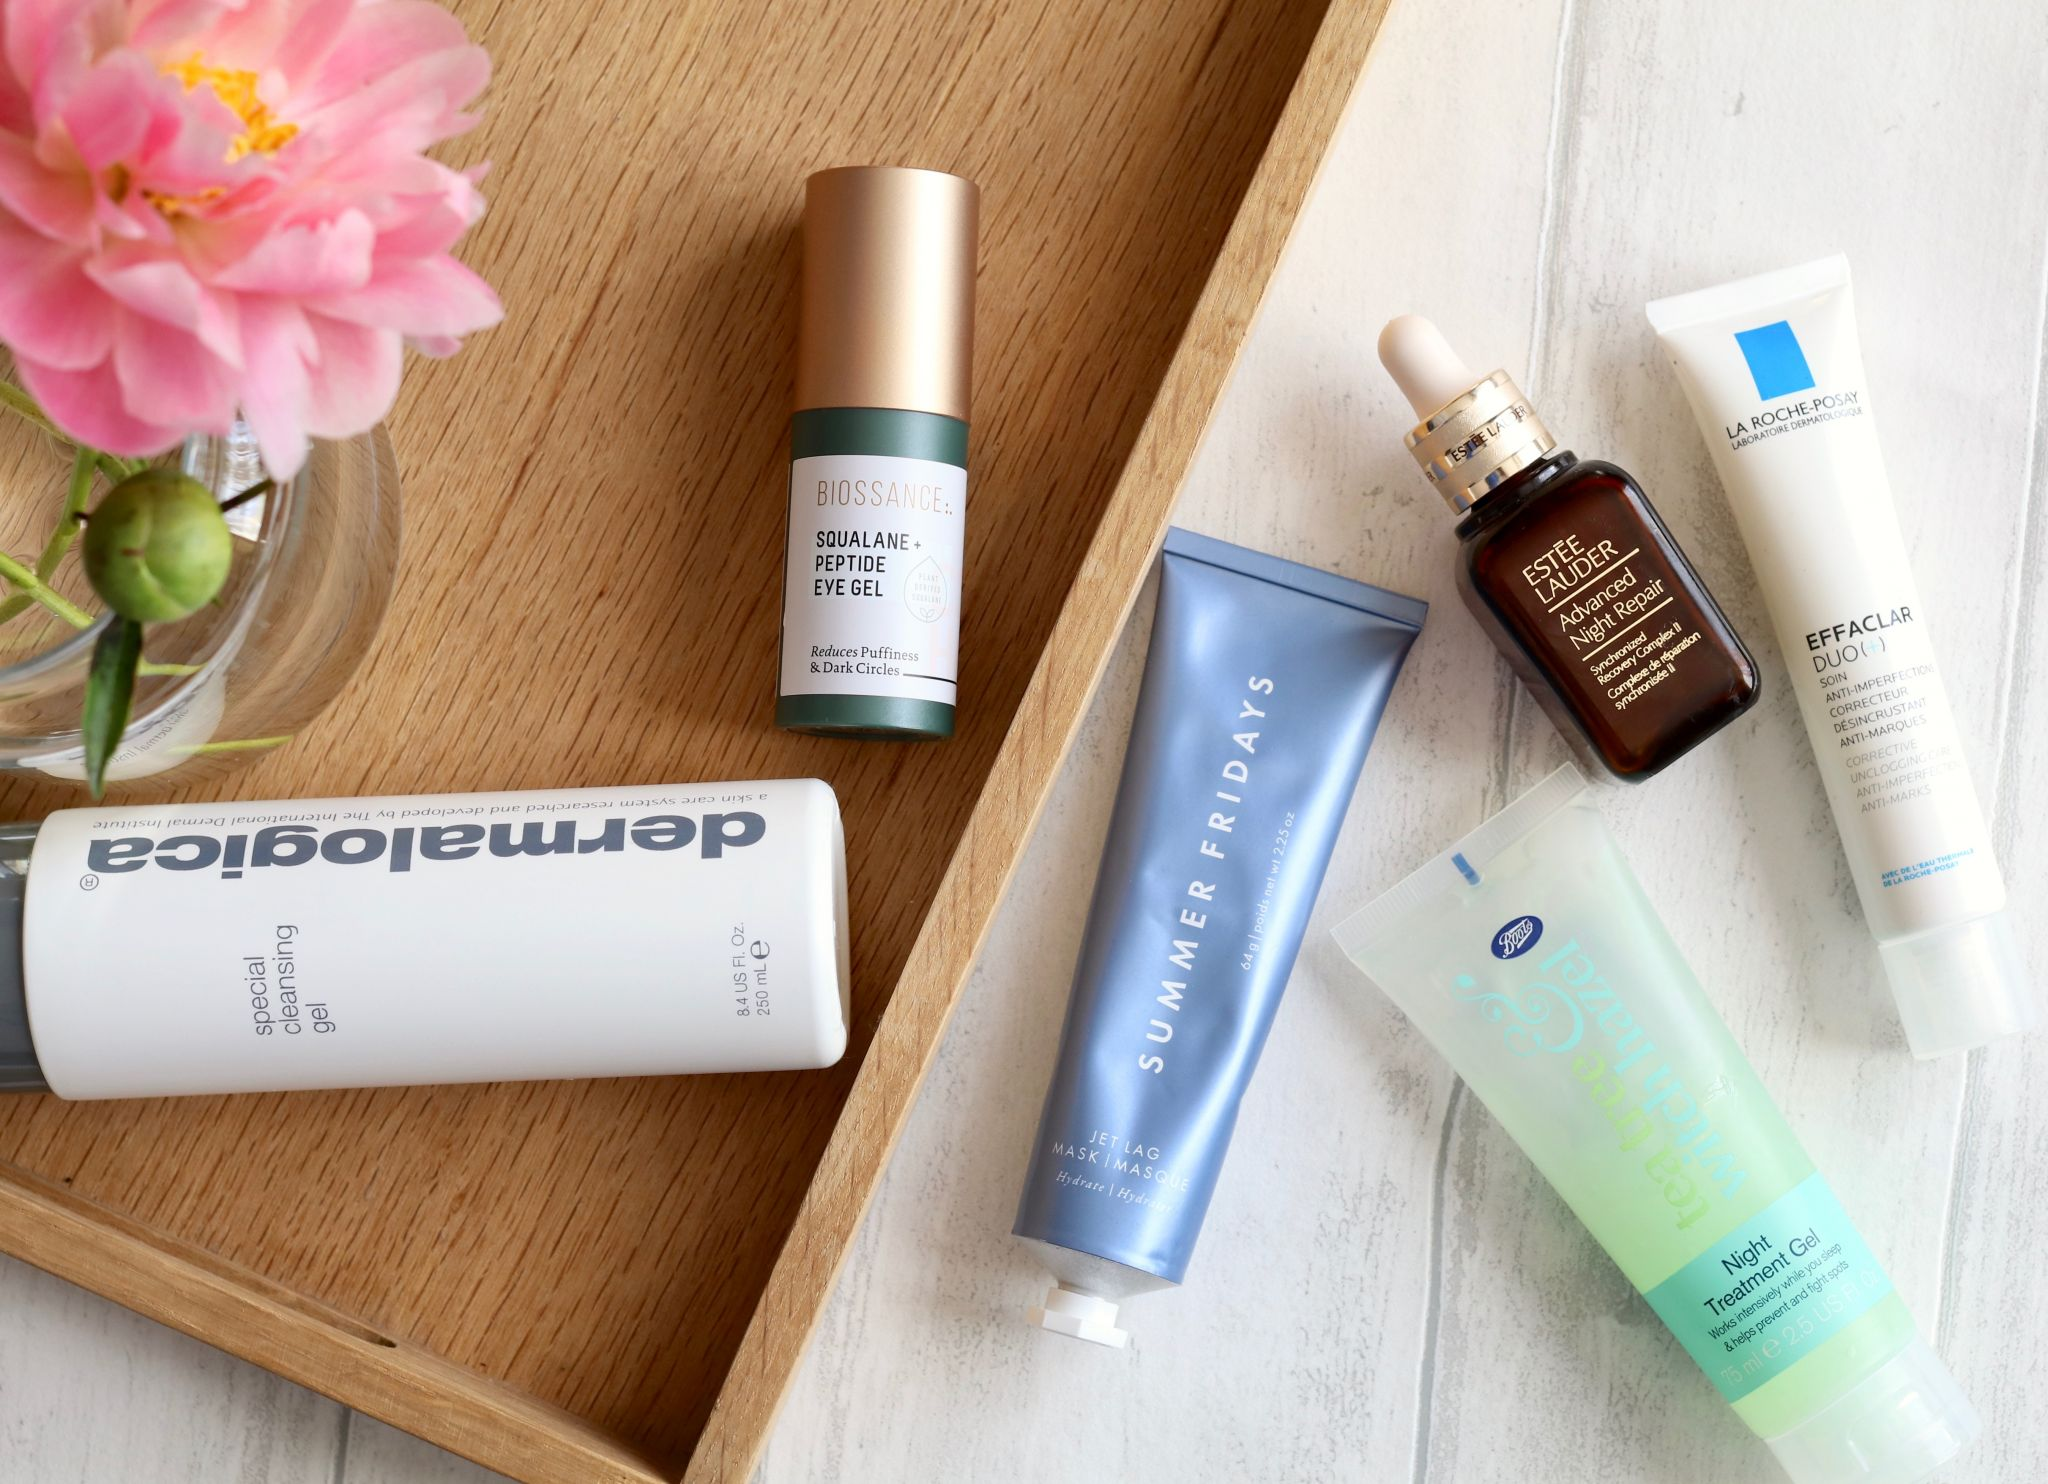 Evening skincare routine - Dermalogica special cleansing gel, Biossance eye gel, Estee Lauder advanced night repair, La Roche-Posay Effaclar duo, Summer Fridays jet lag mask, Boots tea tree night treatment gel